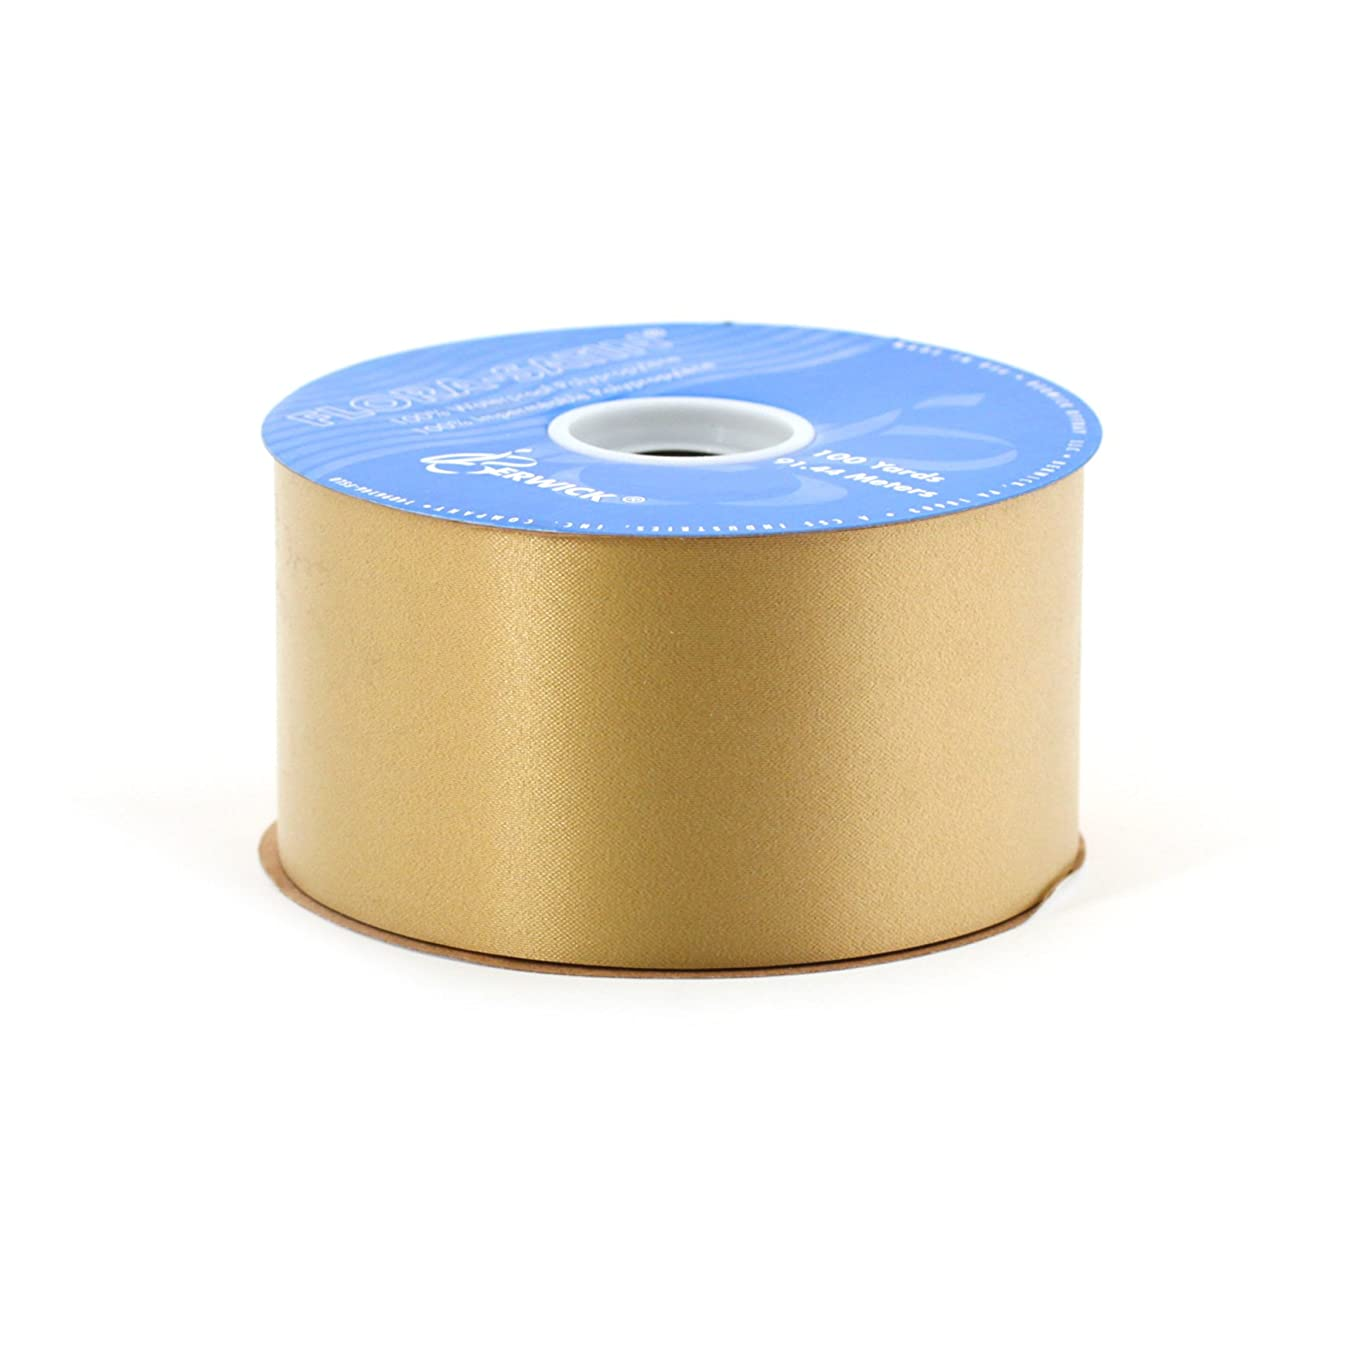 Berwick FL40A59 2-3/4-Inch Wide by 100-Yard Spool Flora Satin Craft Ribbon, Holiday Gold